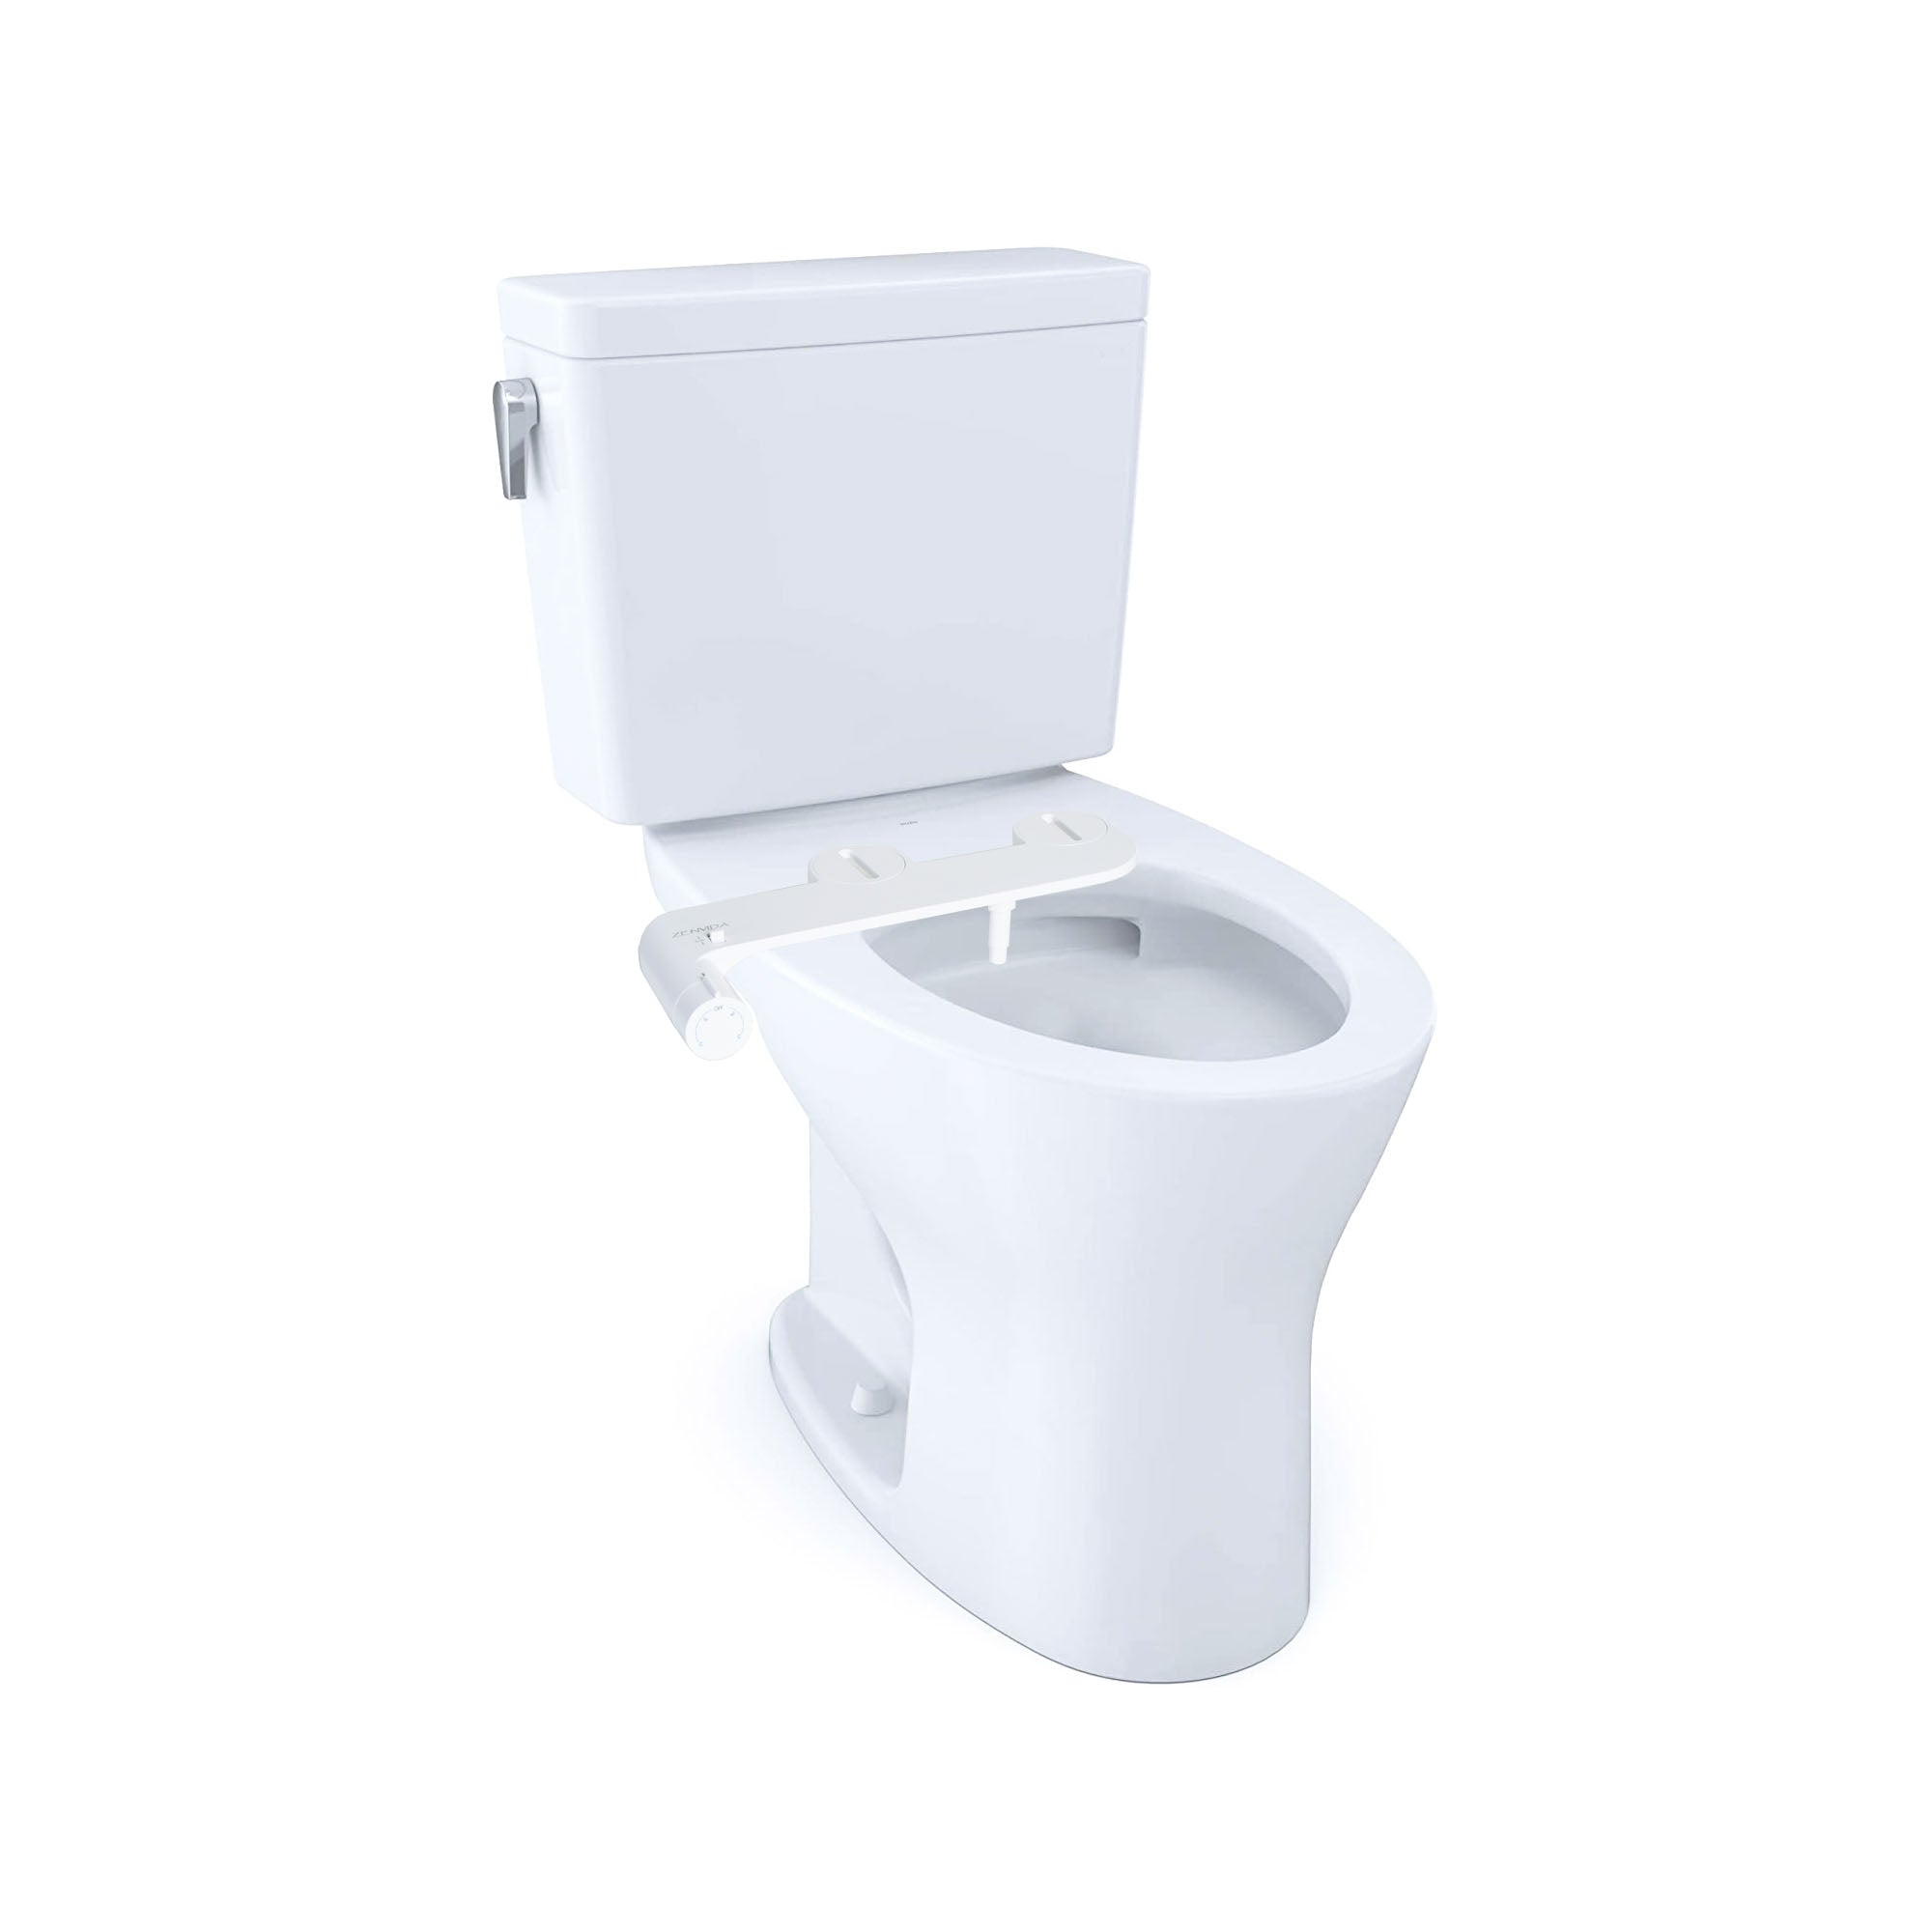 products/270-BDCW01__toilet_main.jpg